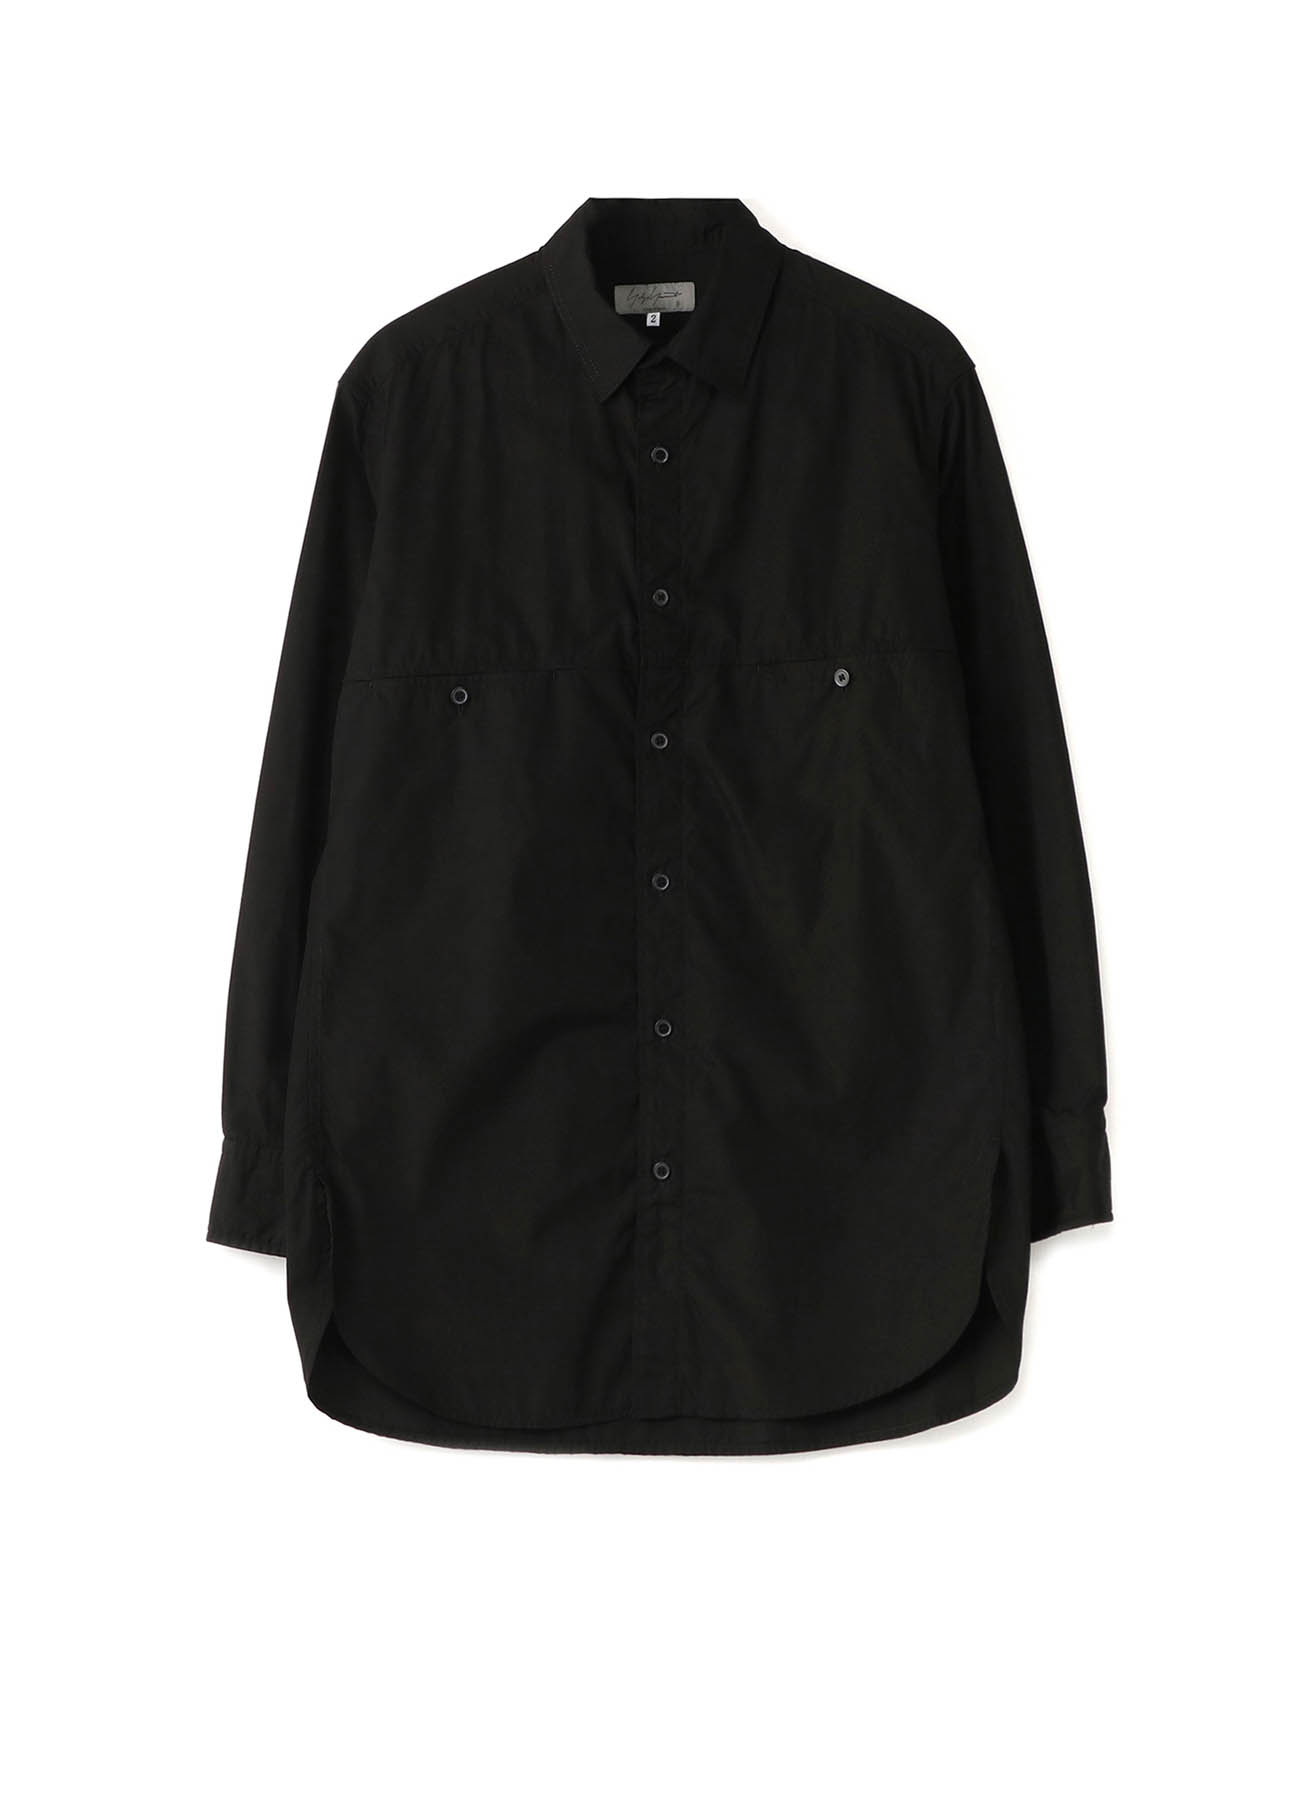 CHAIN STITCH BROAD PATCH CHEST POCKET SHIRT